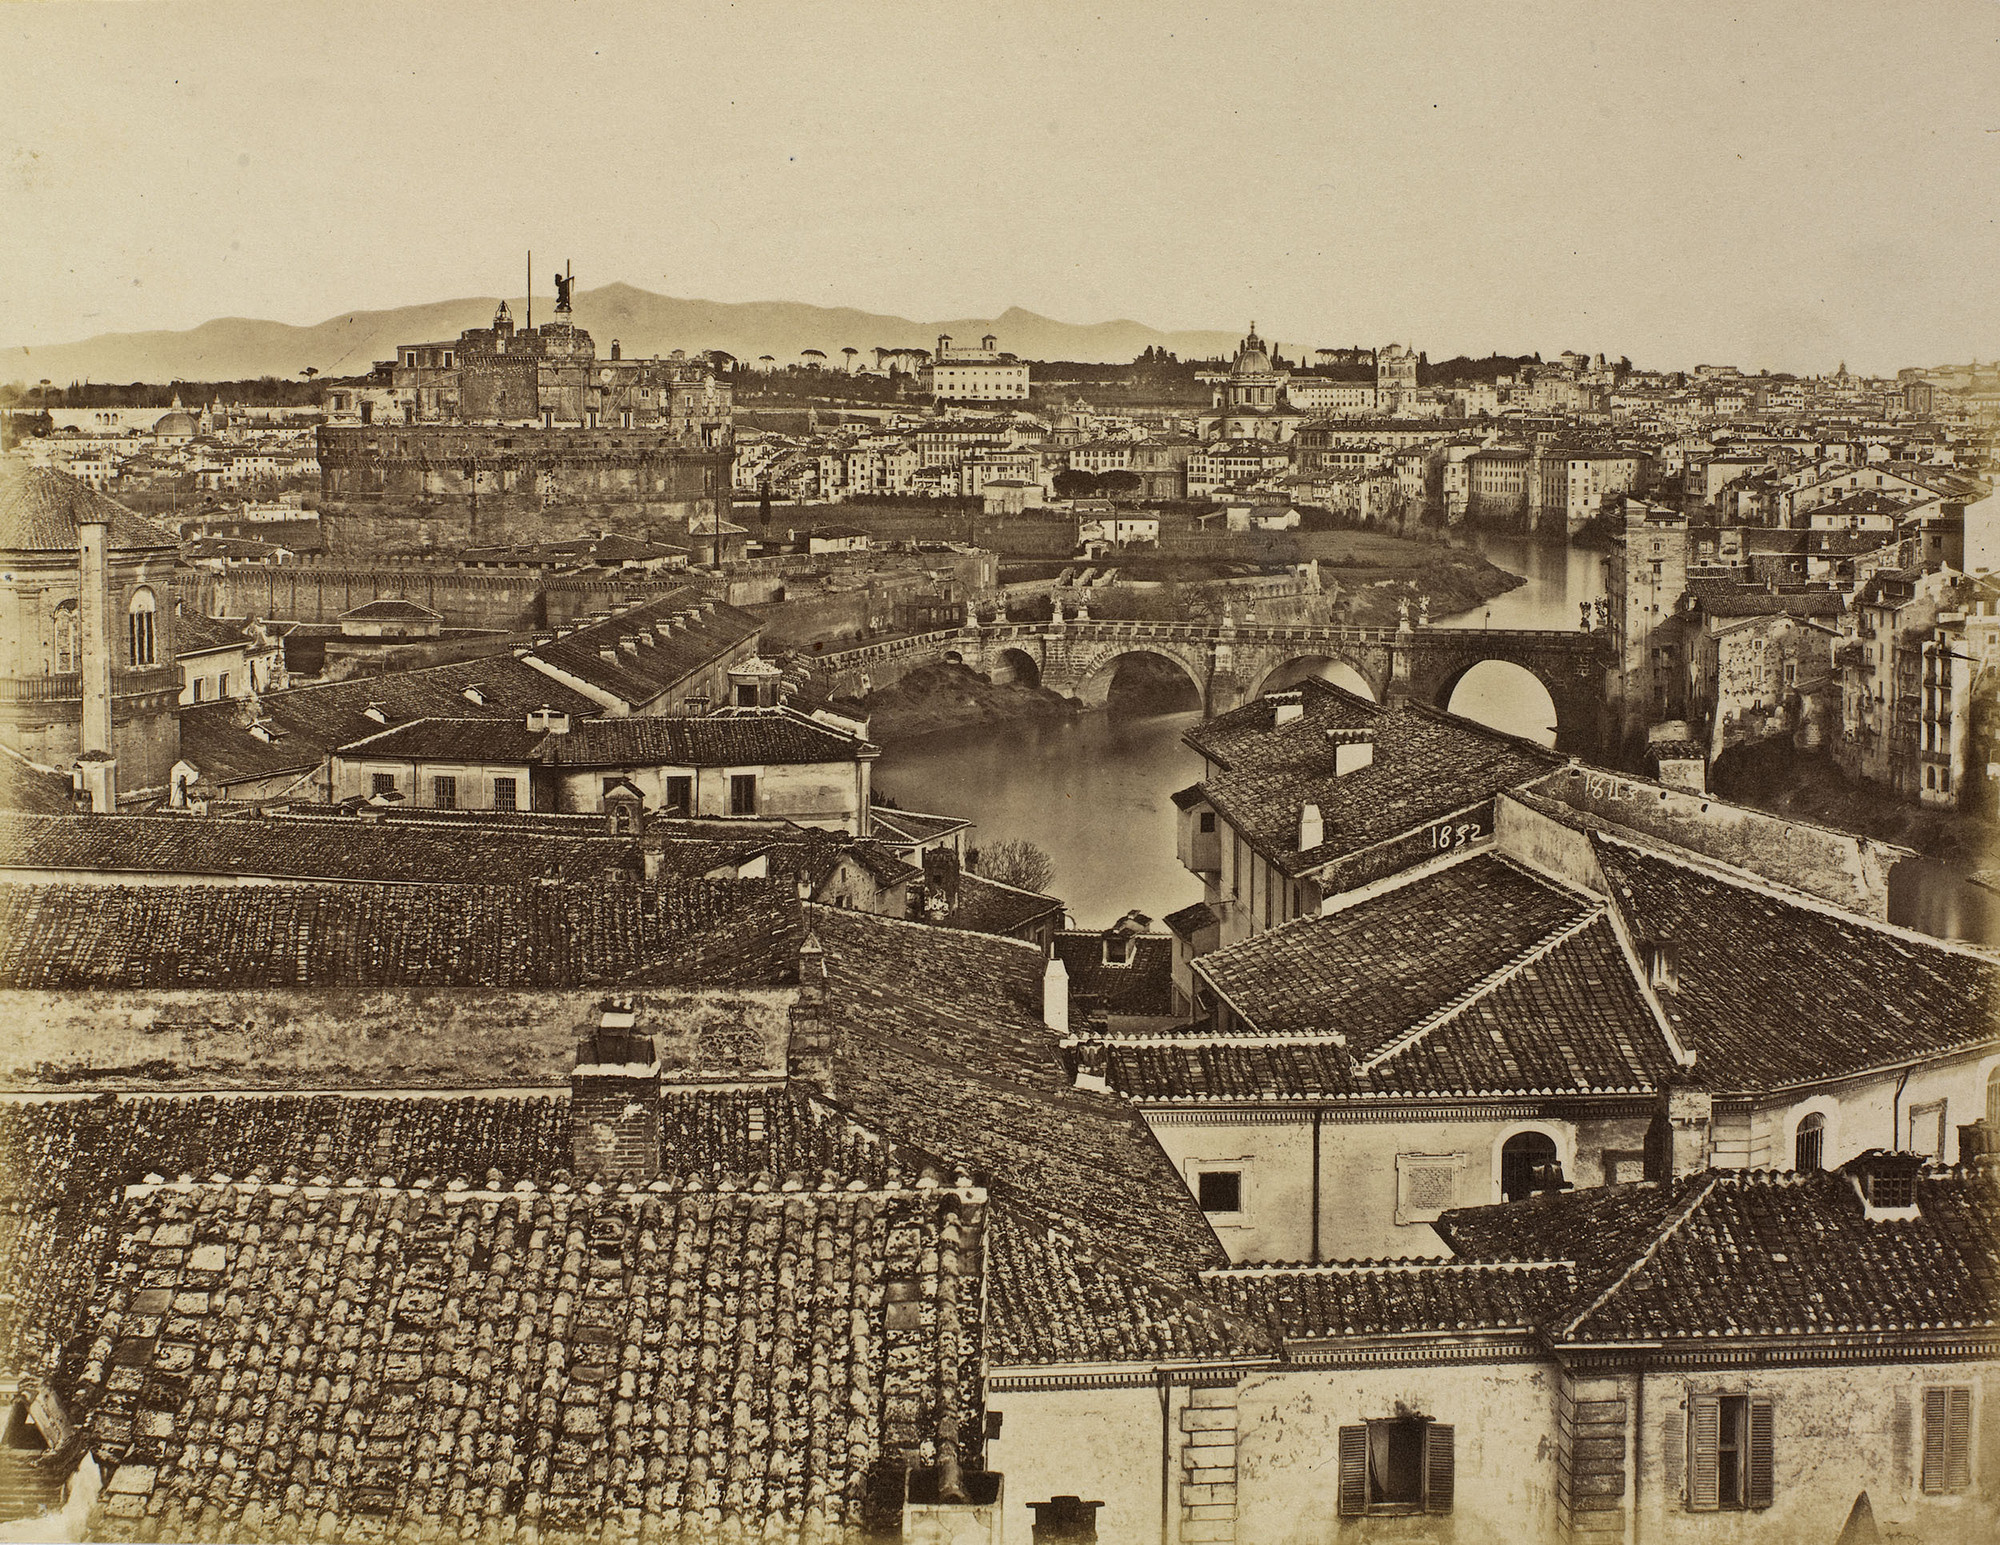 Photograph of a view of Rome with the bridge of St Angelo spanning the river Tiber in the middle distance and the Sabine Hills in the far distance. Roof tops of buildings dominate the foreground.